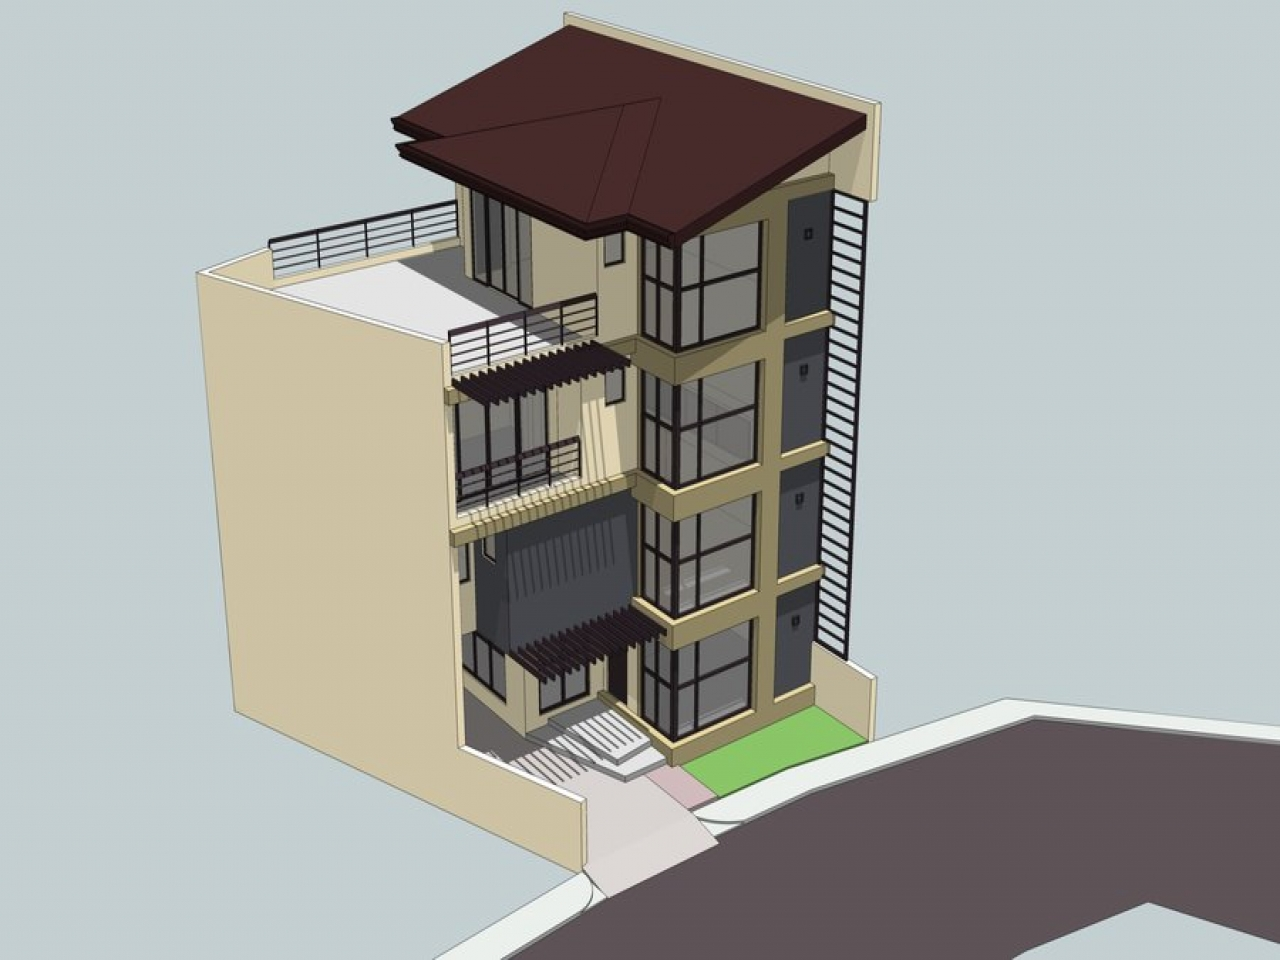 3 Storey House With Roof Deck Design 3 Storey Building